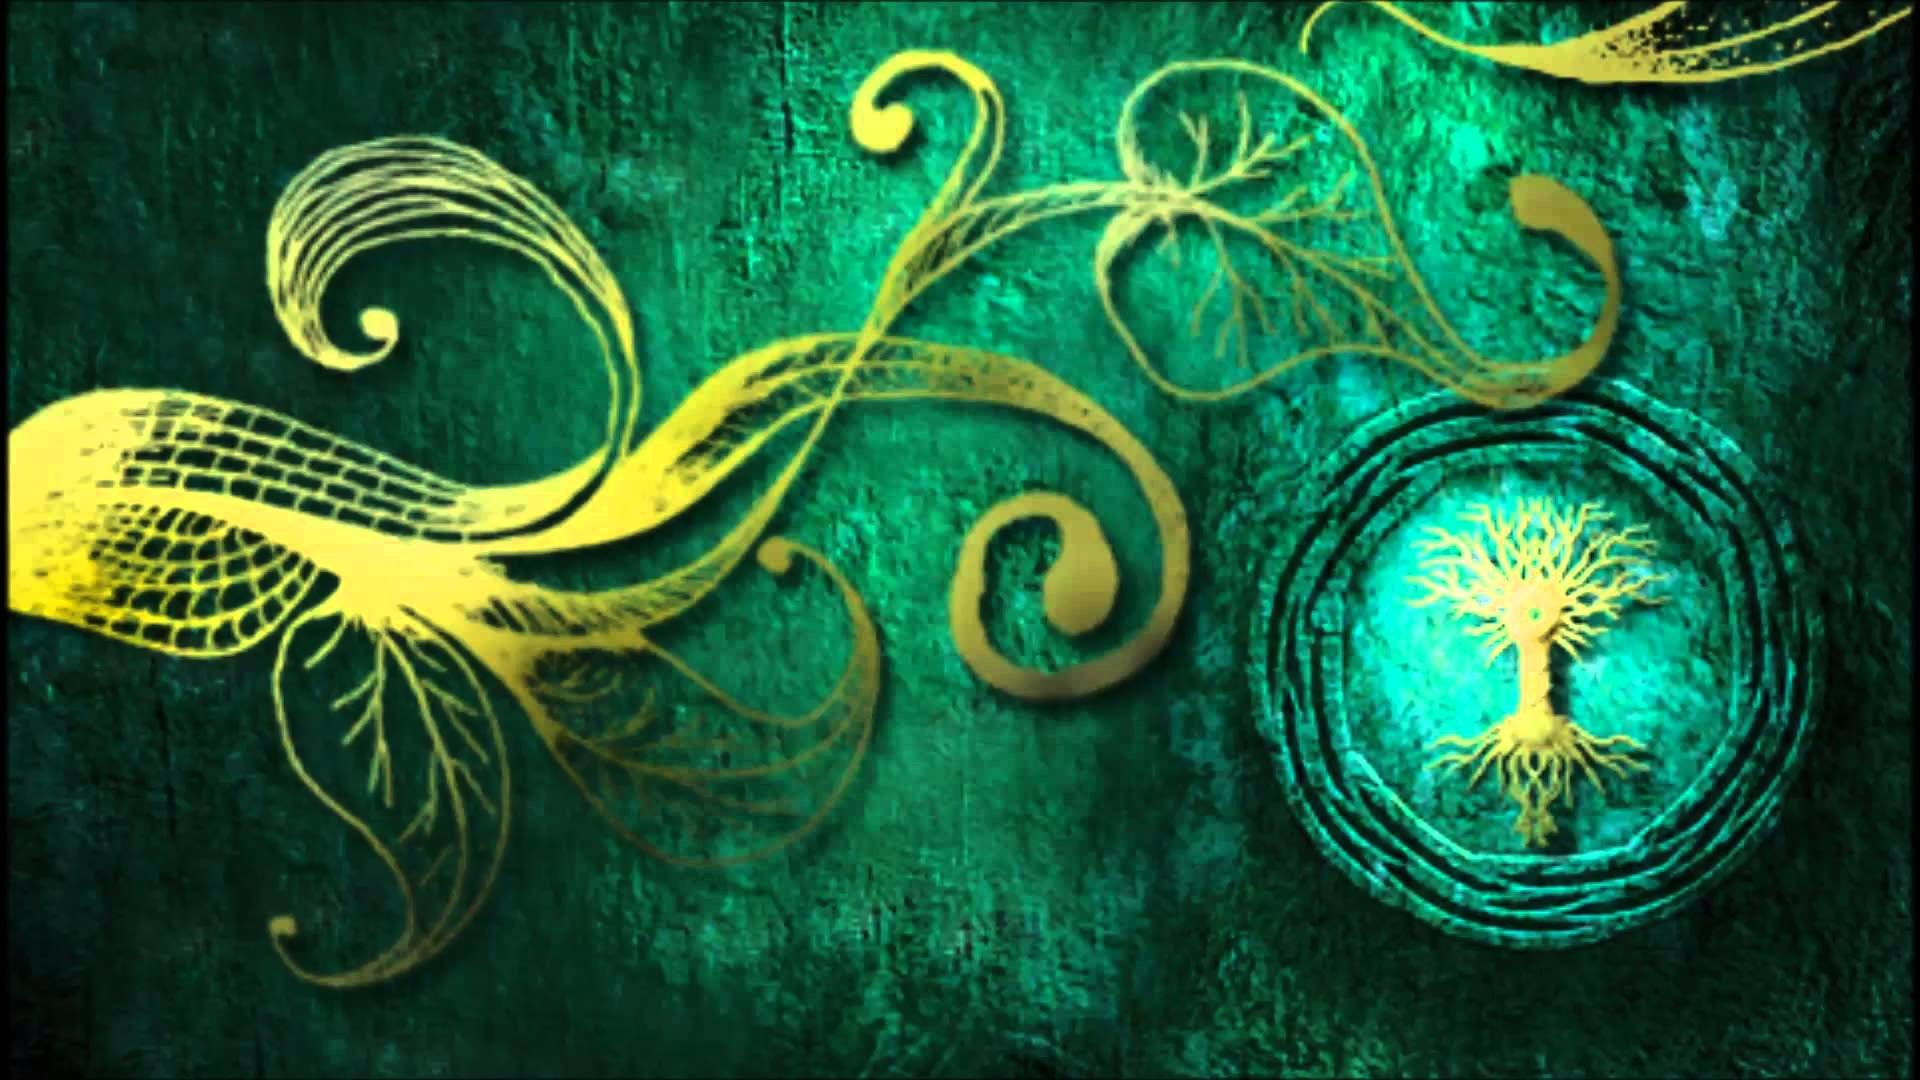 Mac 3d Wallpapers Free Download Celtic Knot Wallpapers Desktop 46 Images